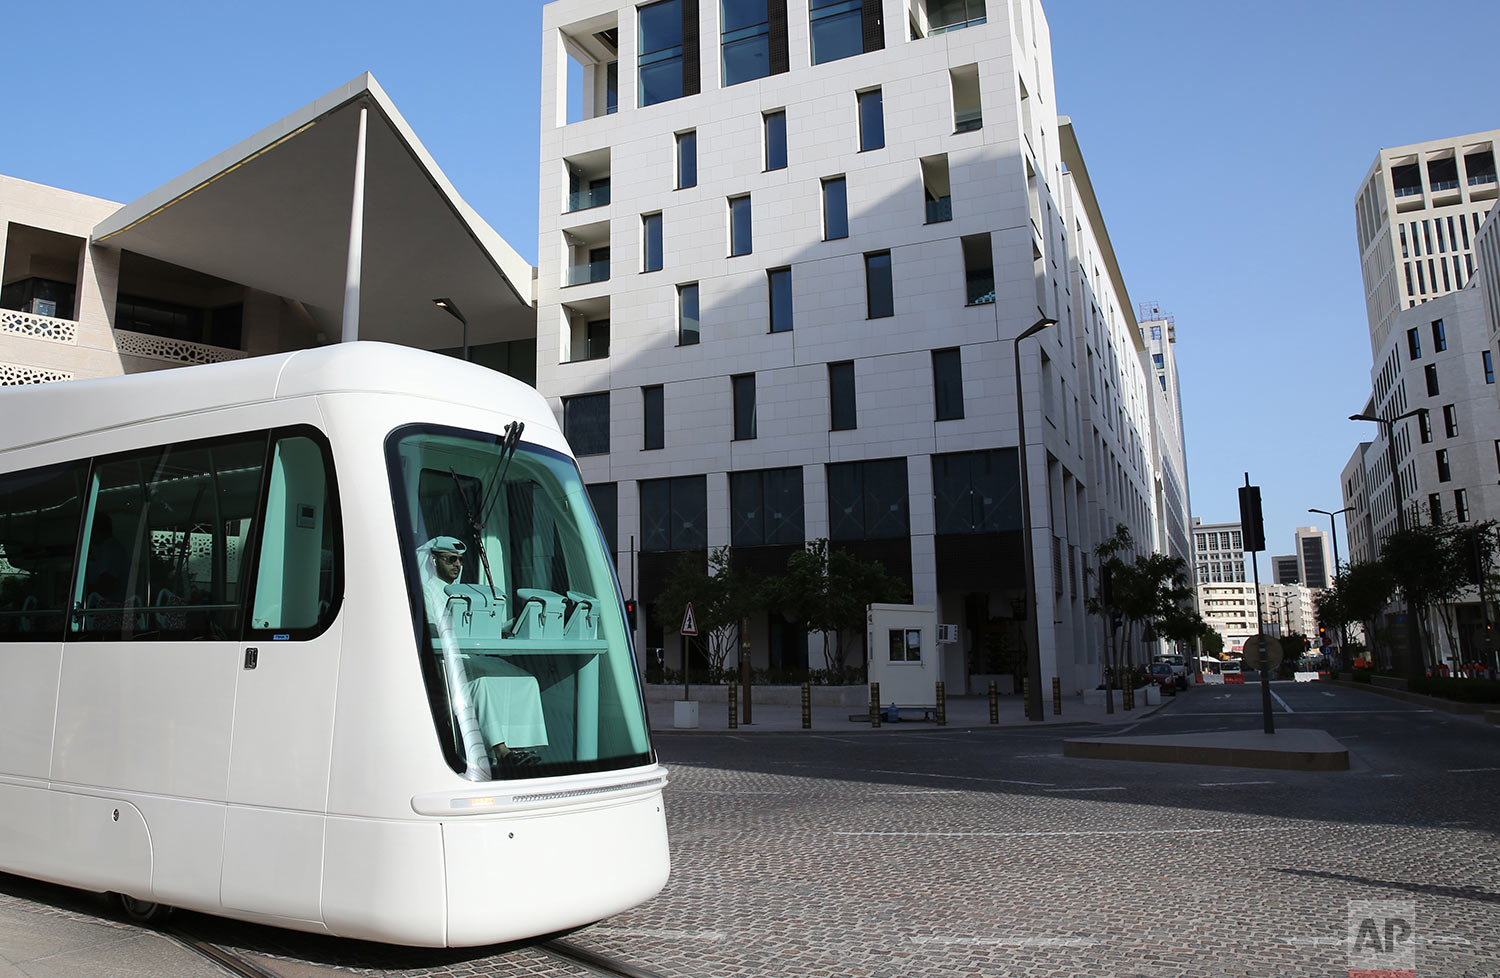 In this Wednesday, April 24, 2019 photo, Mohammed, an Iranian origin Qatari tram driver, born and raised in Qatar, drives during a trial session at the Musheireb Downtown Doha district, Qatar.  (AP Photo/Kamran Jebreili)